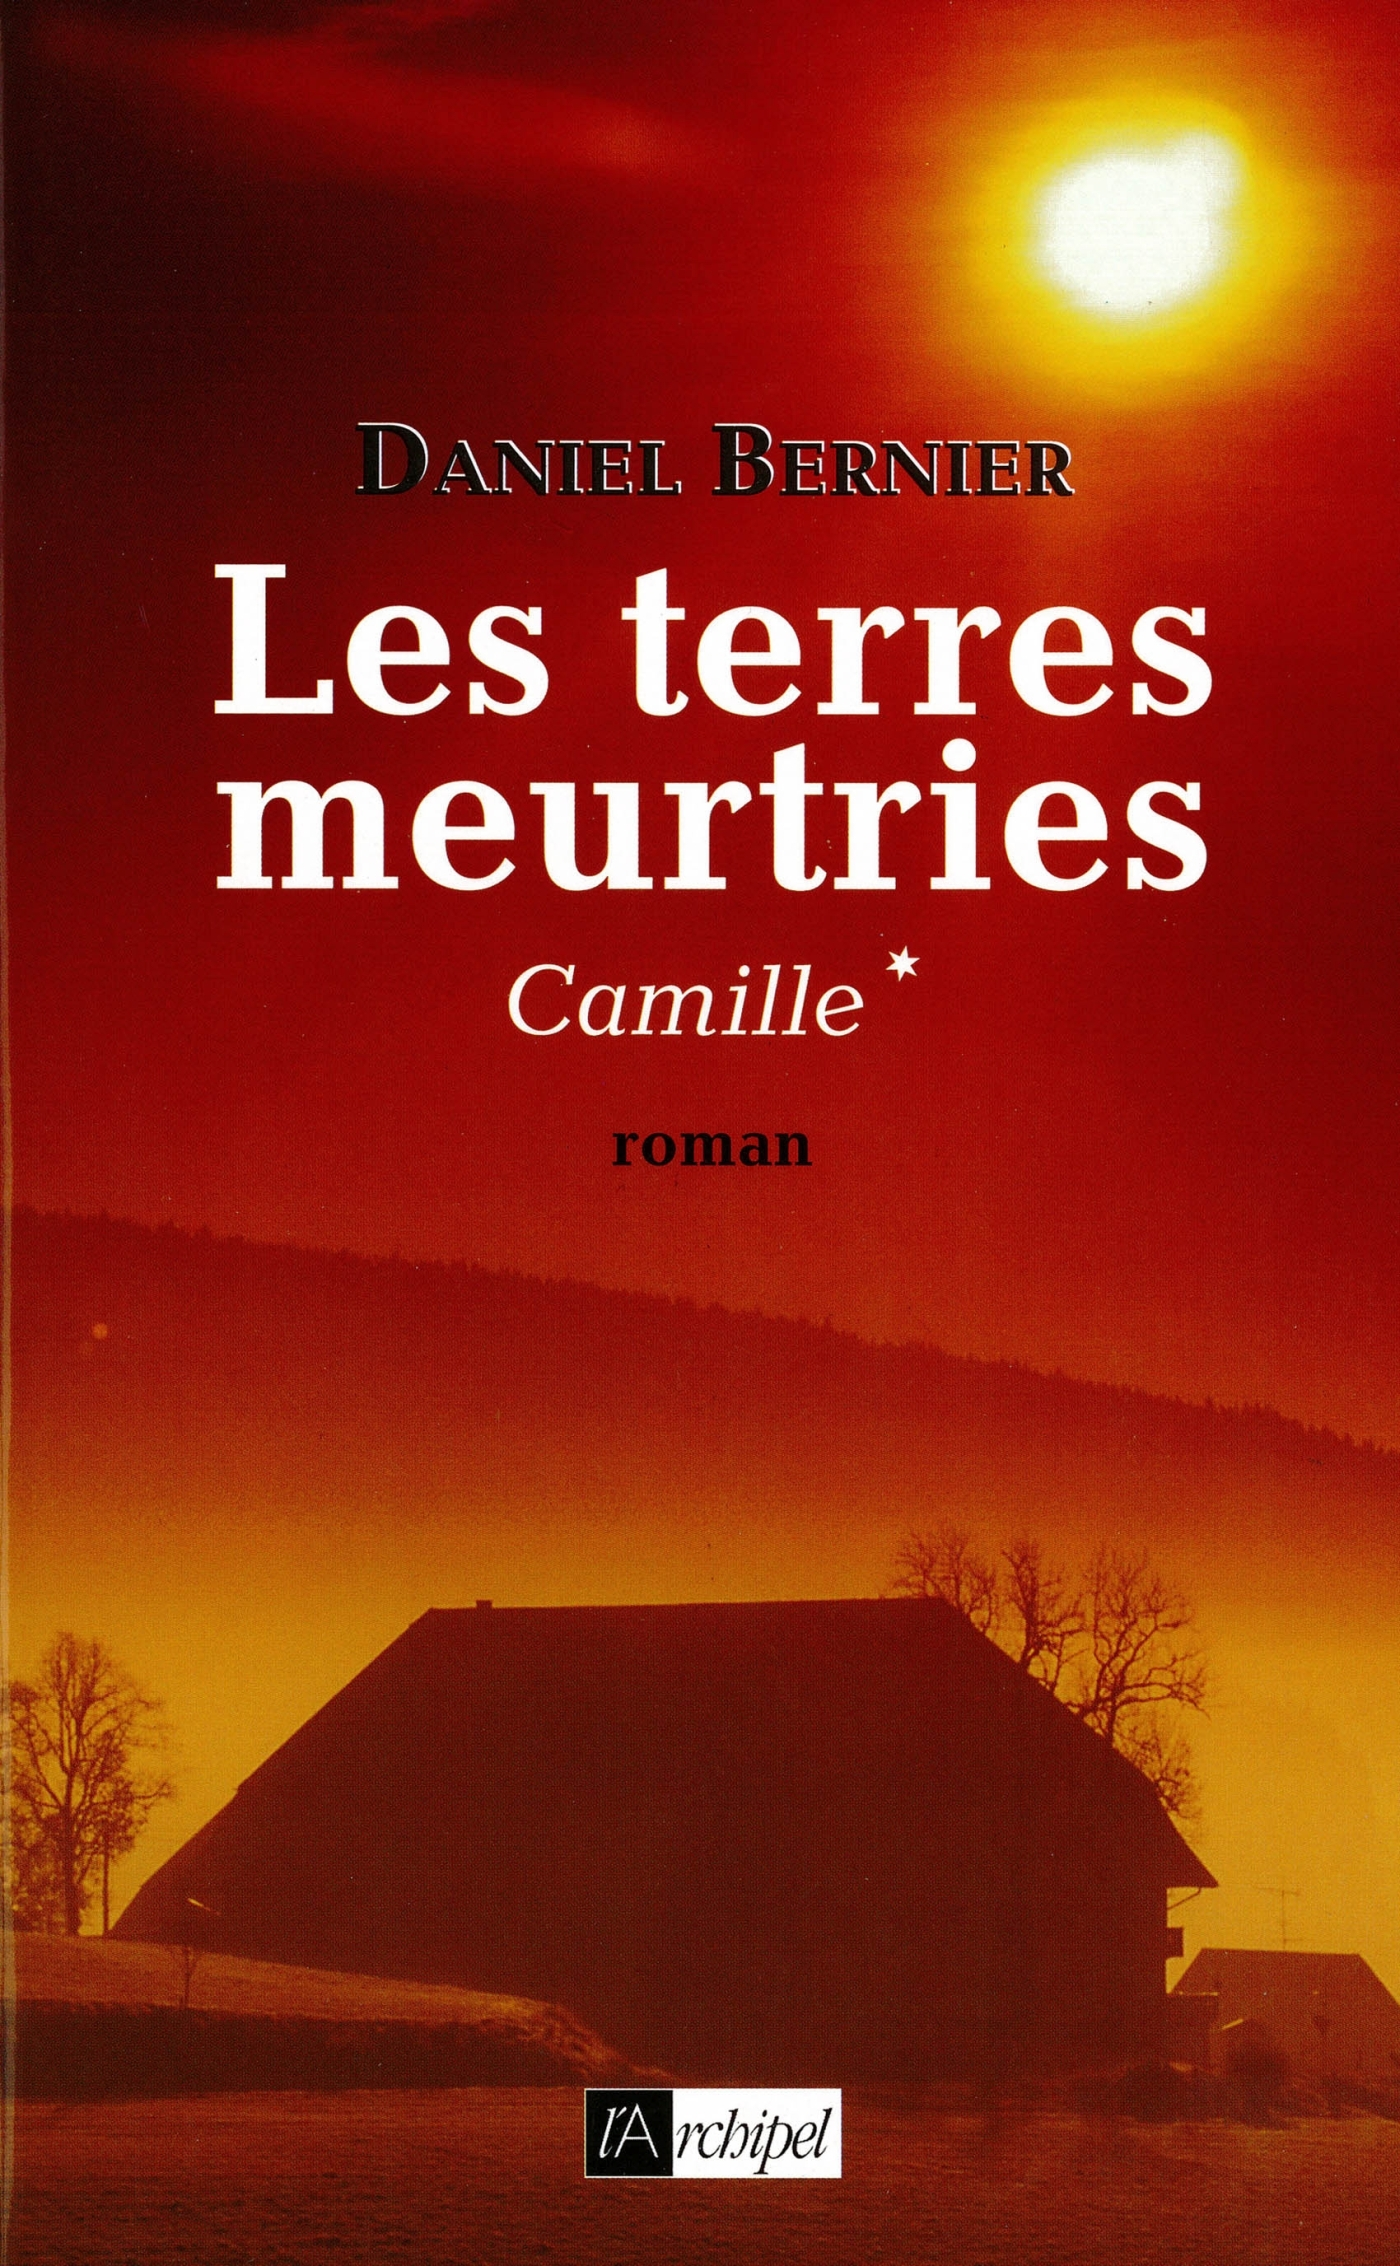 LES TERRES MEURTRIES - CAMILLE*